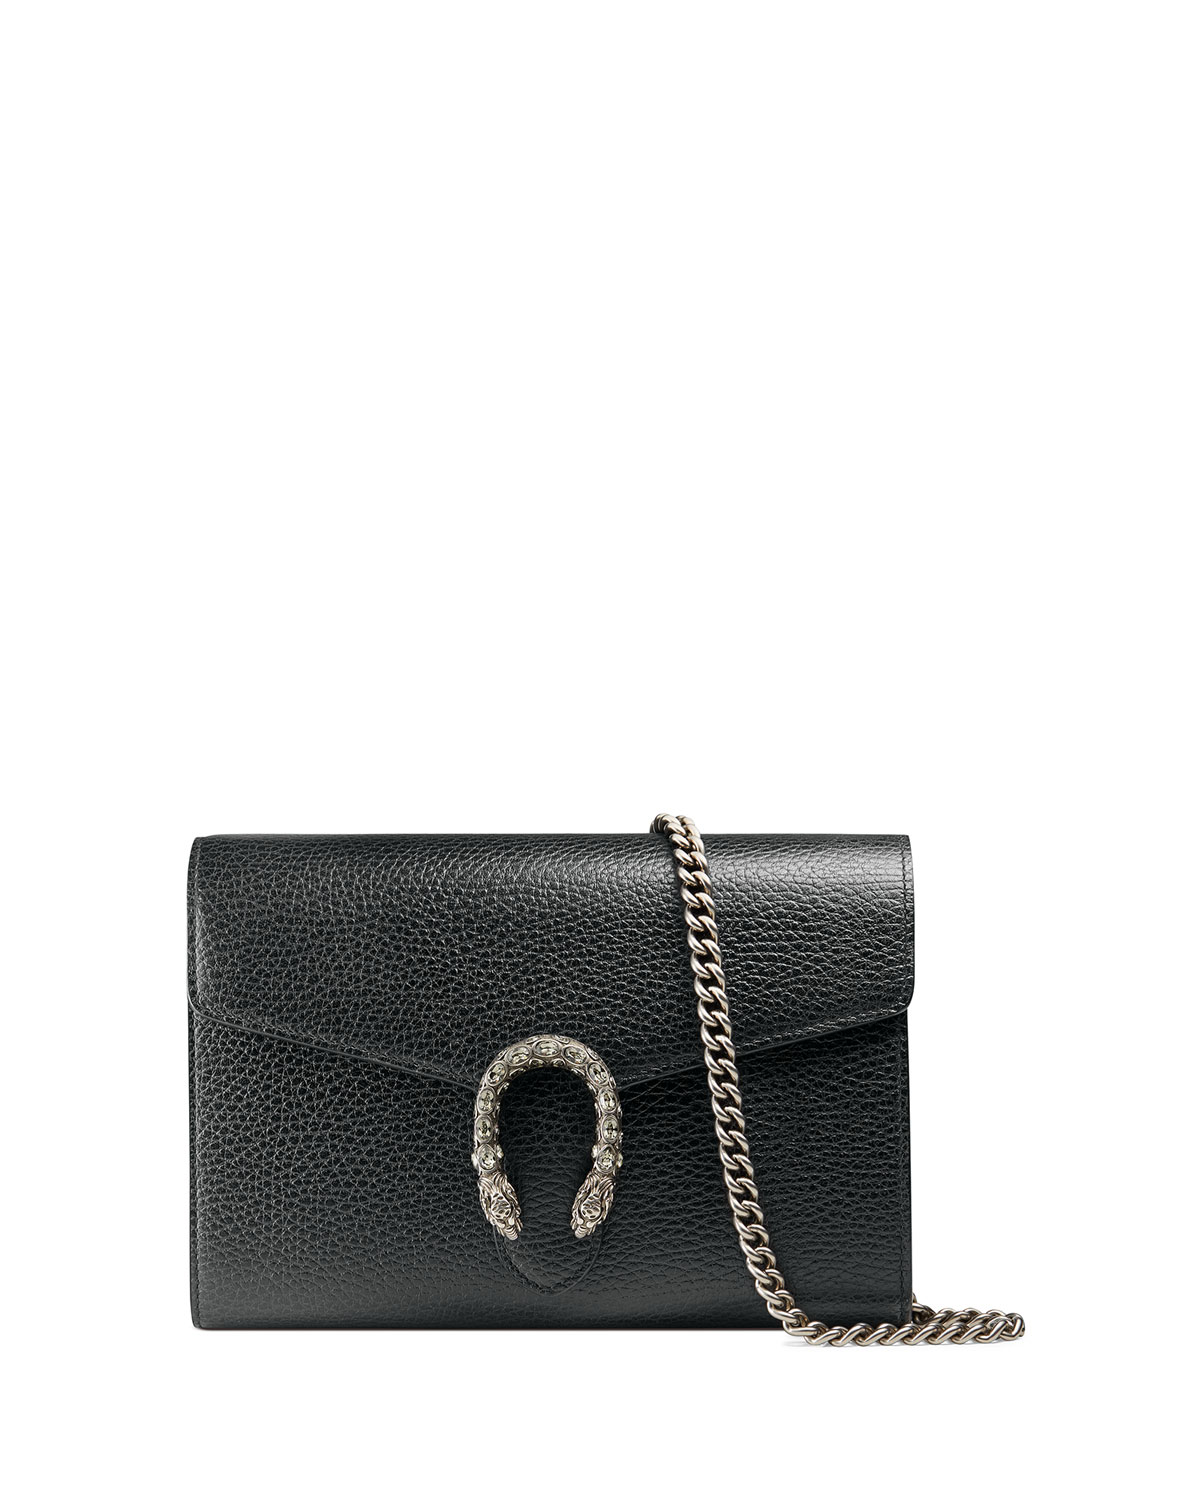 06e2b480672 Gucci Dionysus Leather Mini Chain Bag